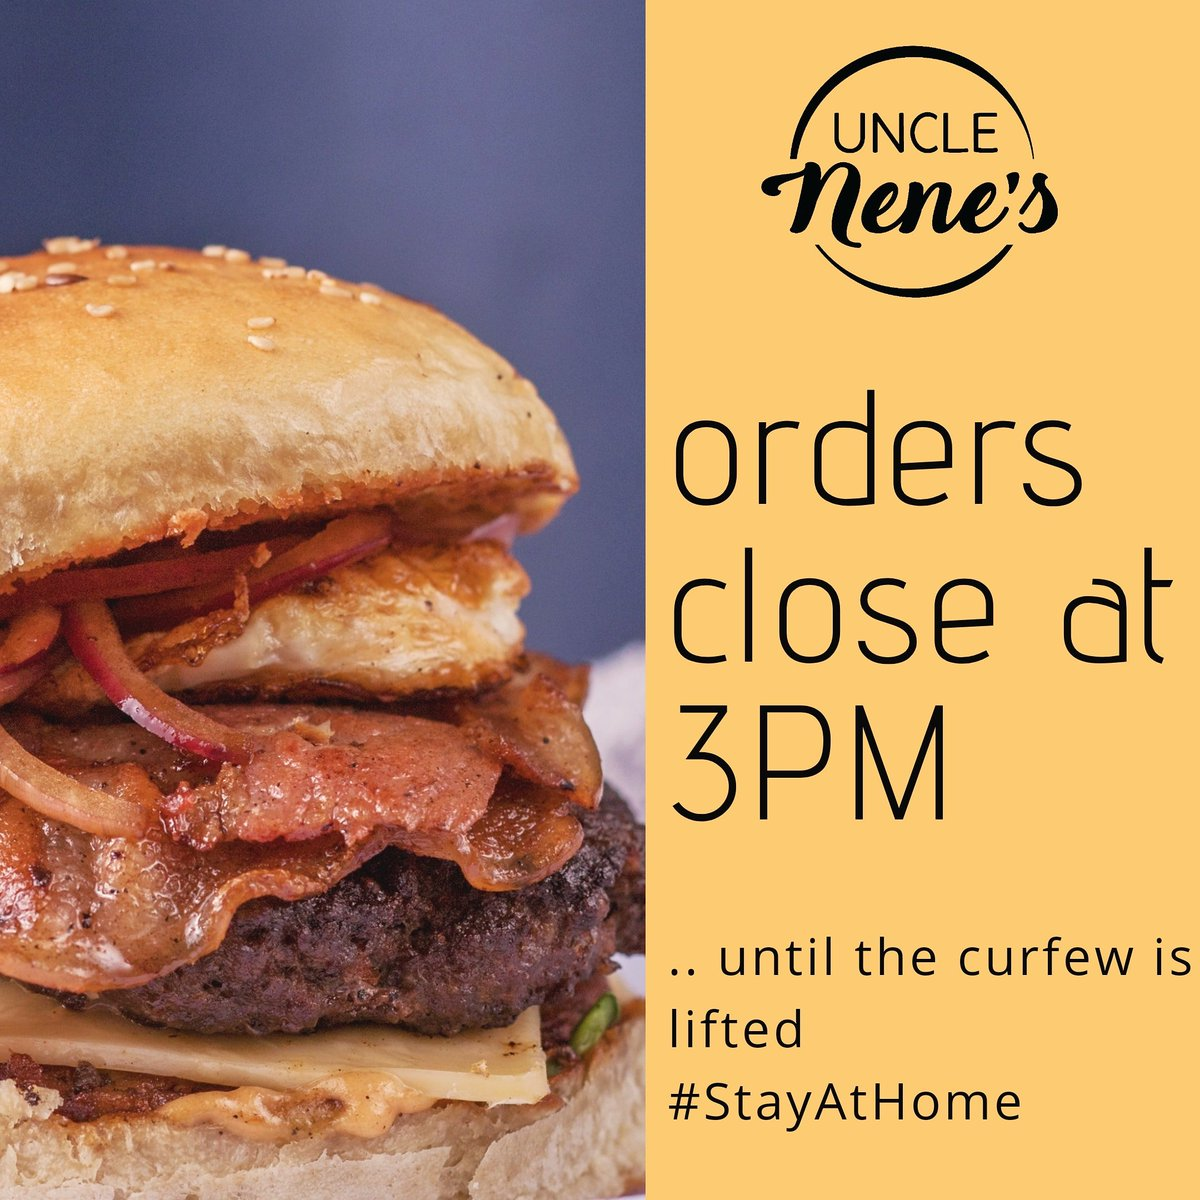 ⭐ORDERS CLOSE AT 3PM⭐ All burgers are served with our signature delicious seasoned fries and slaw😋 Call or text 0736713761 to order lunch. WE DELIVER 🛵 #unclenenes 🇰🇪 #bestburger #yum